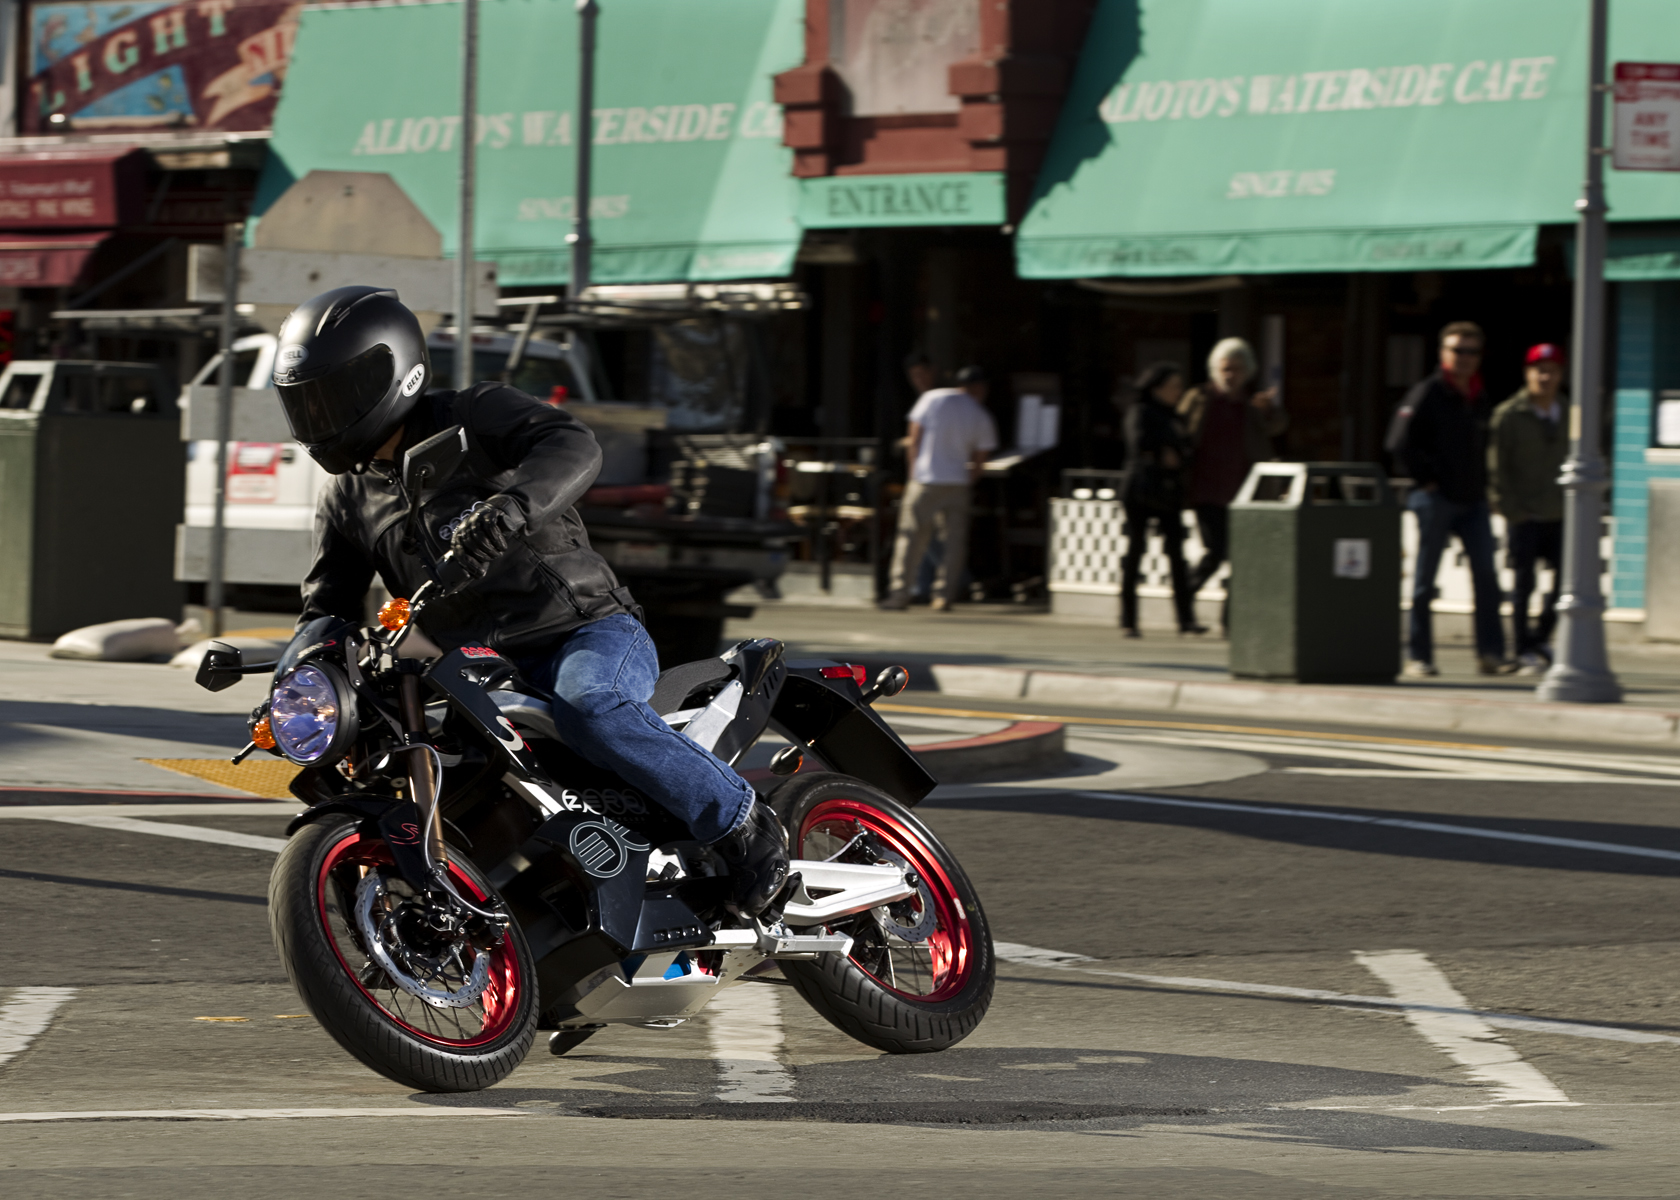 2011 Zero S Electric Motorcycle: Sideways Turn, Fisherman's Wharf